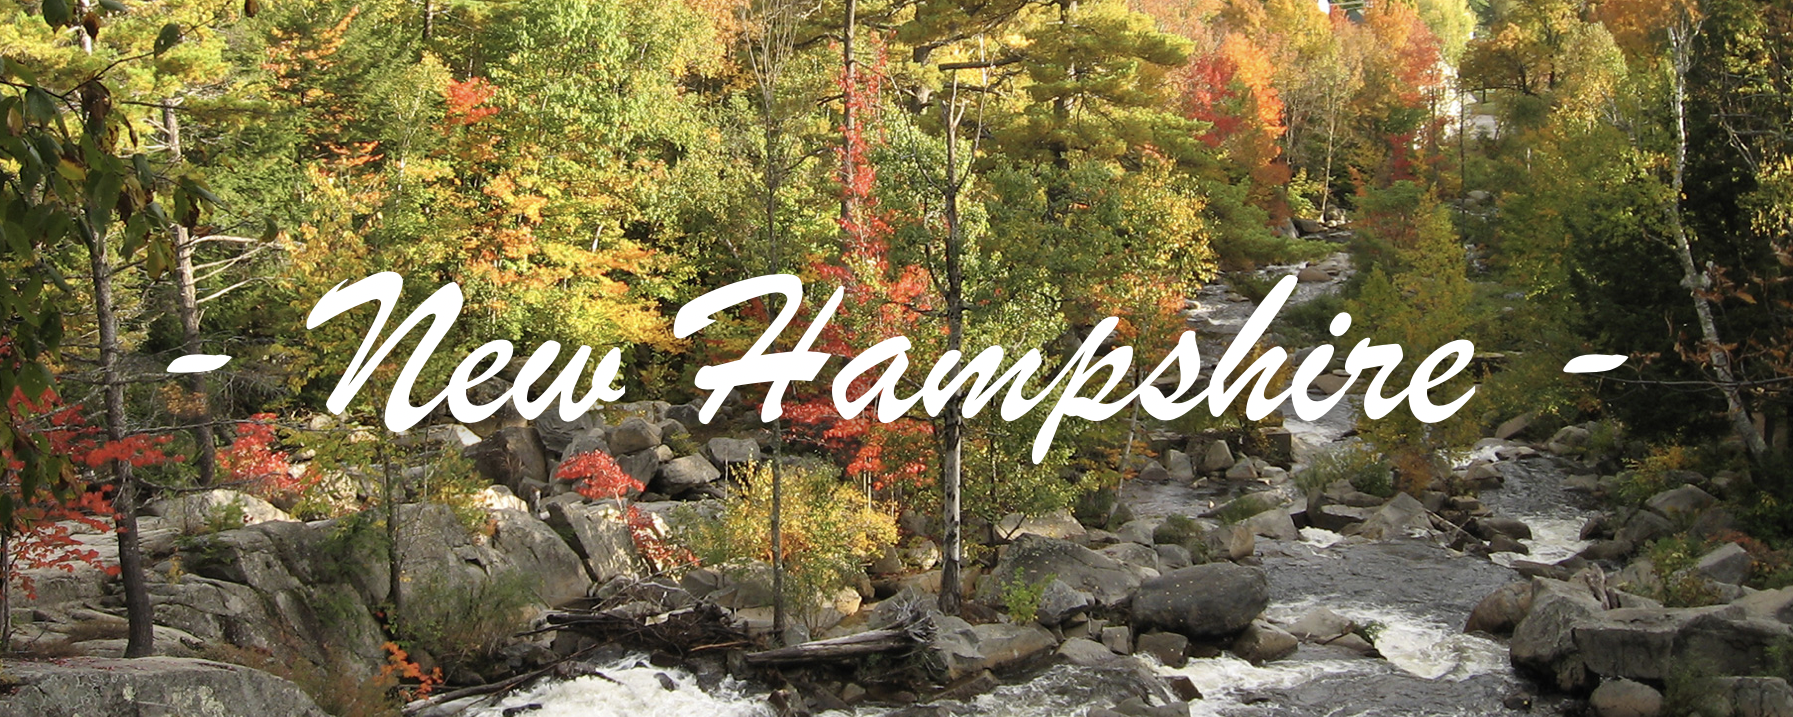 New Hampshire community image